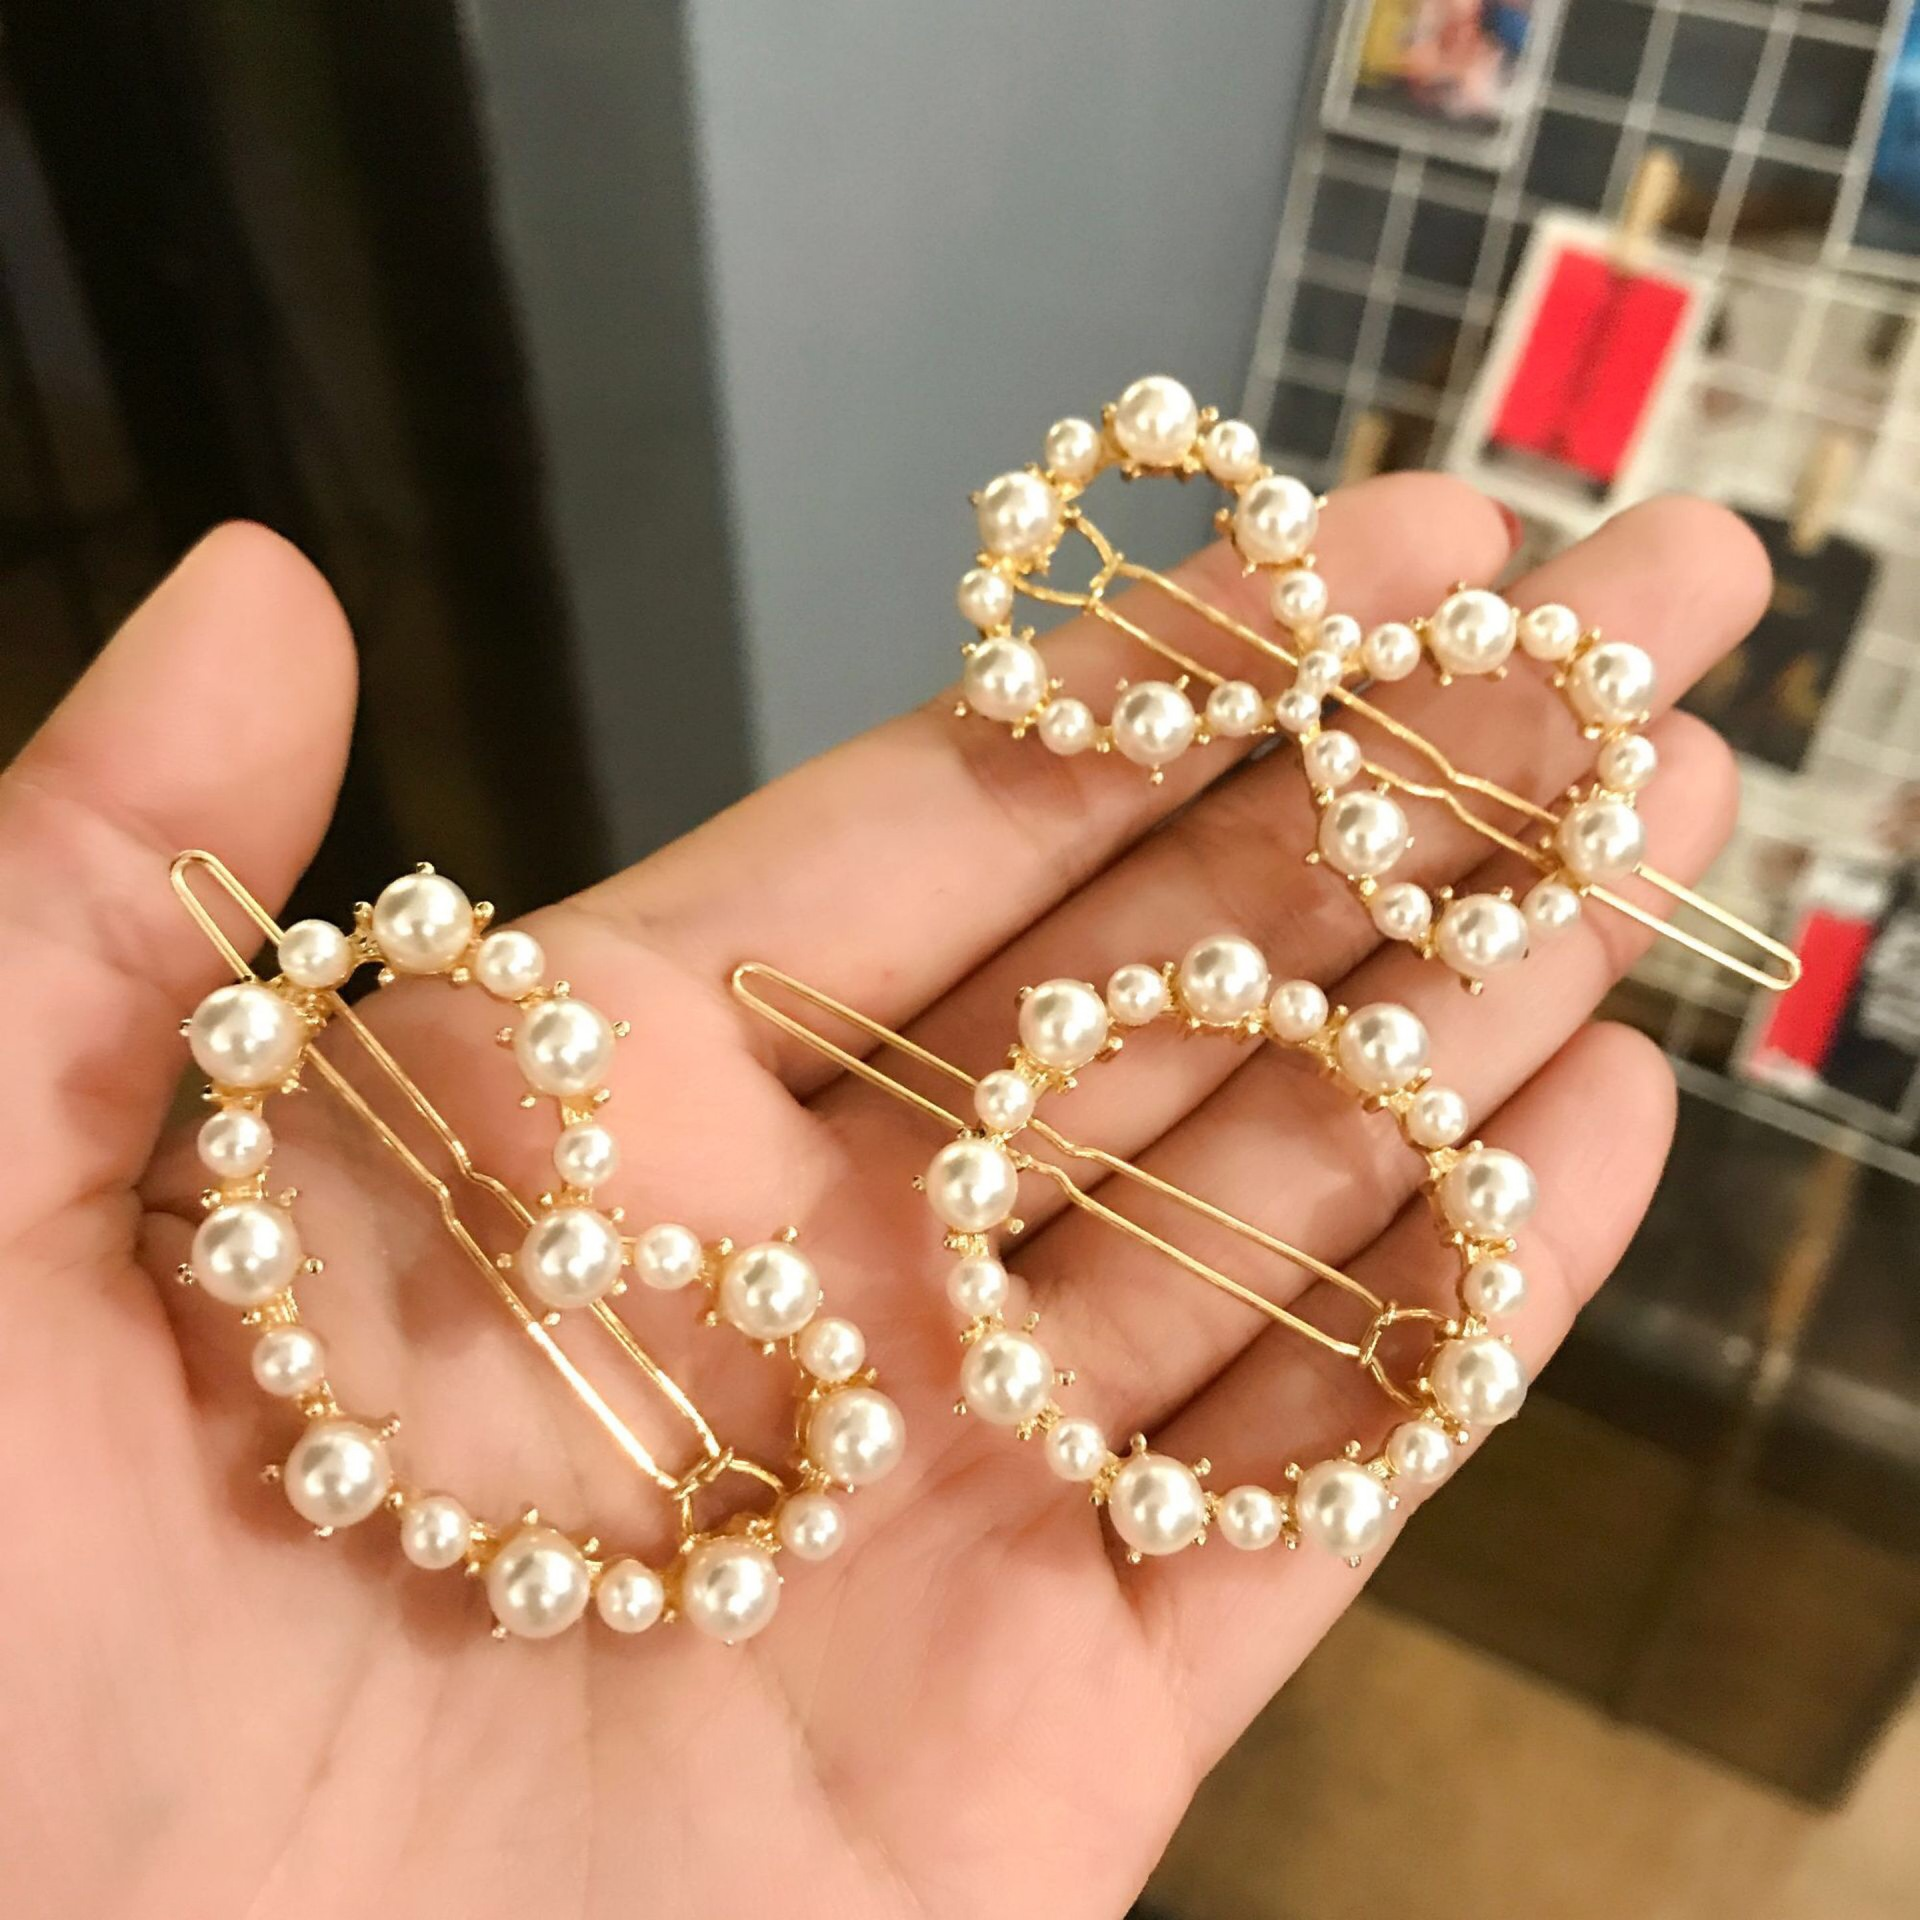 New rose gold <strong>Hair</strong> <strong>Accessories</strong> Geometric Shape Hollow crown bow pearl <strong>hair</strong> Barrettes